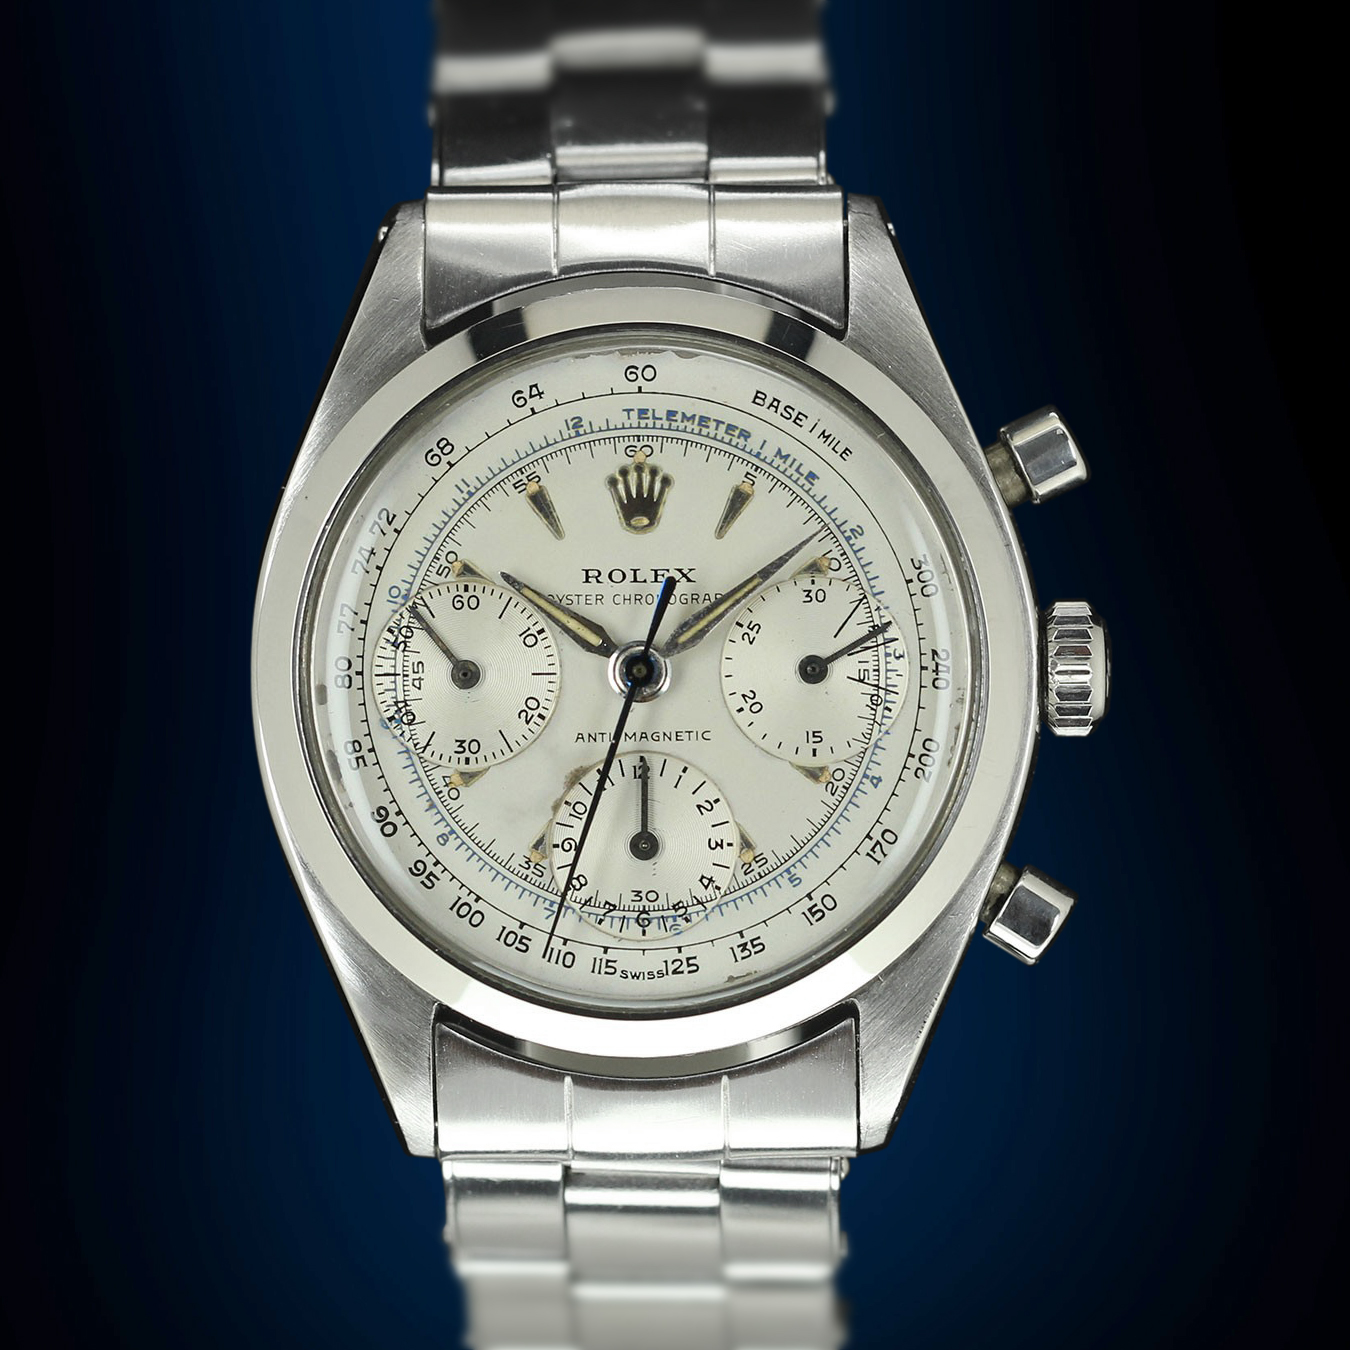 Rolex Chronograph 6234 for sale